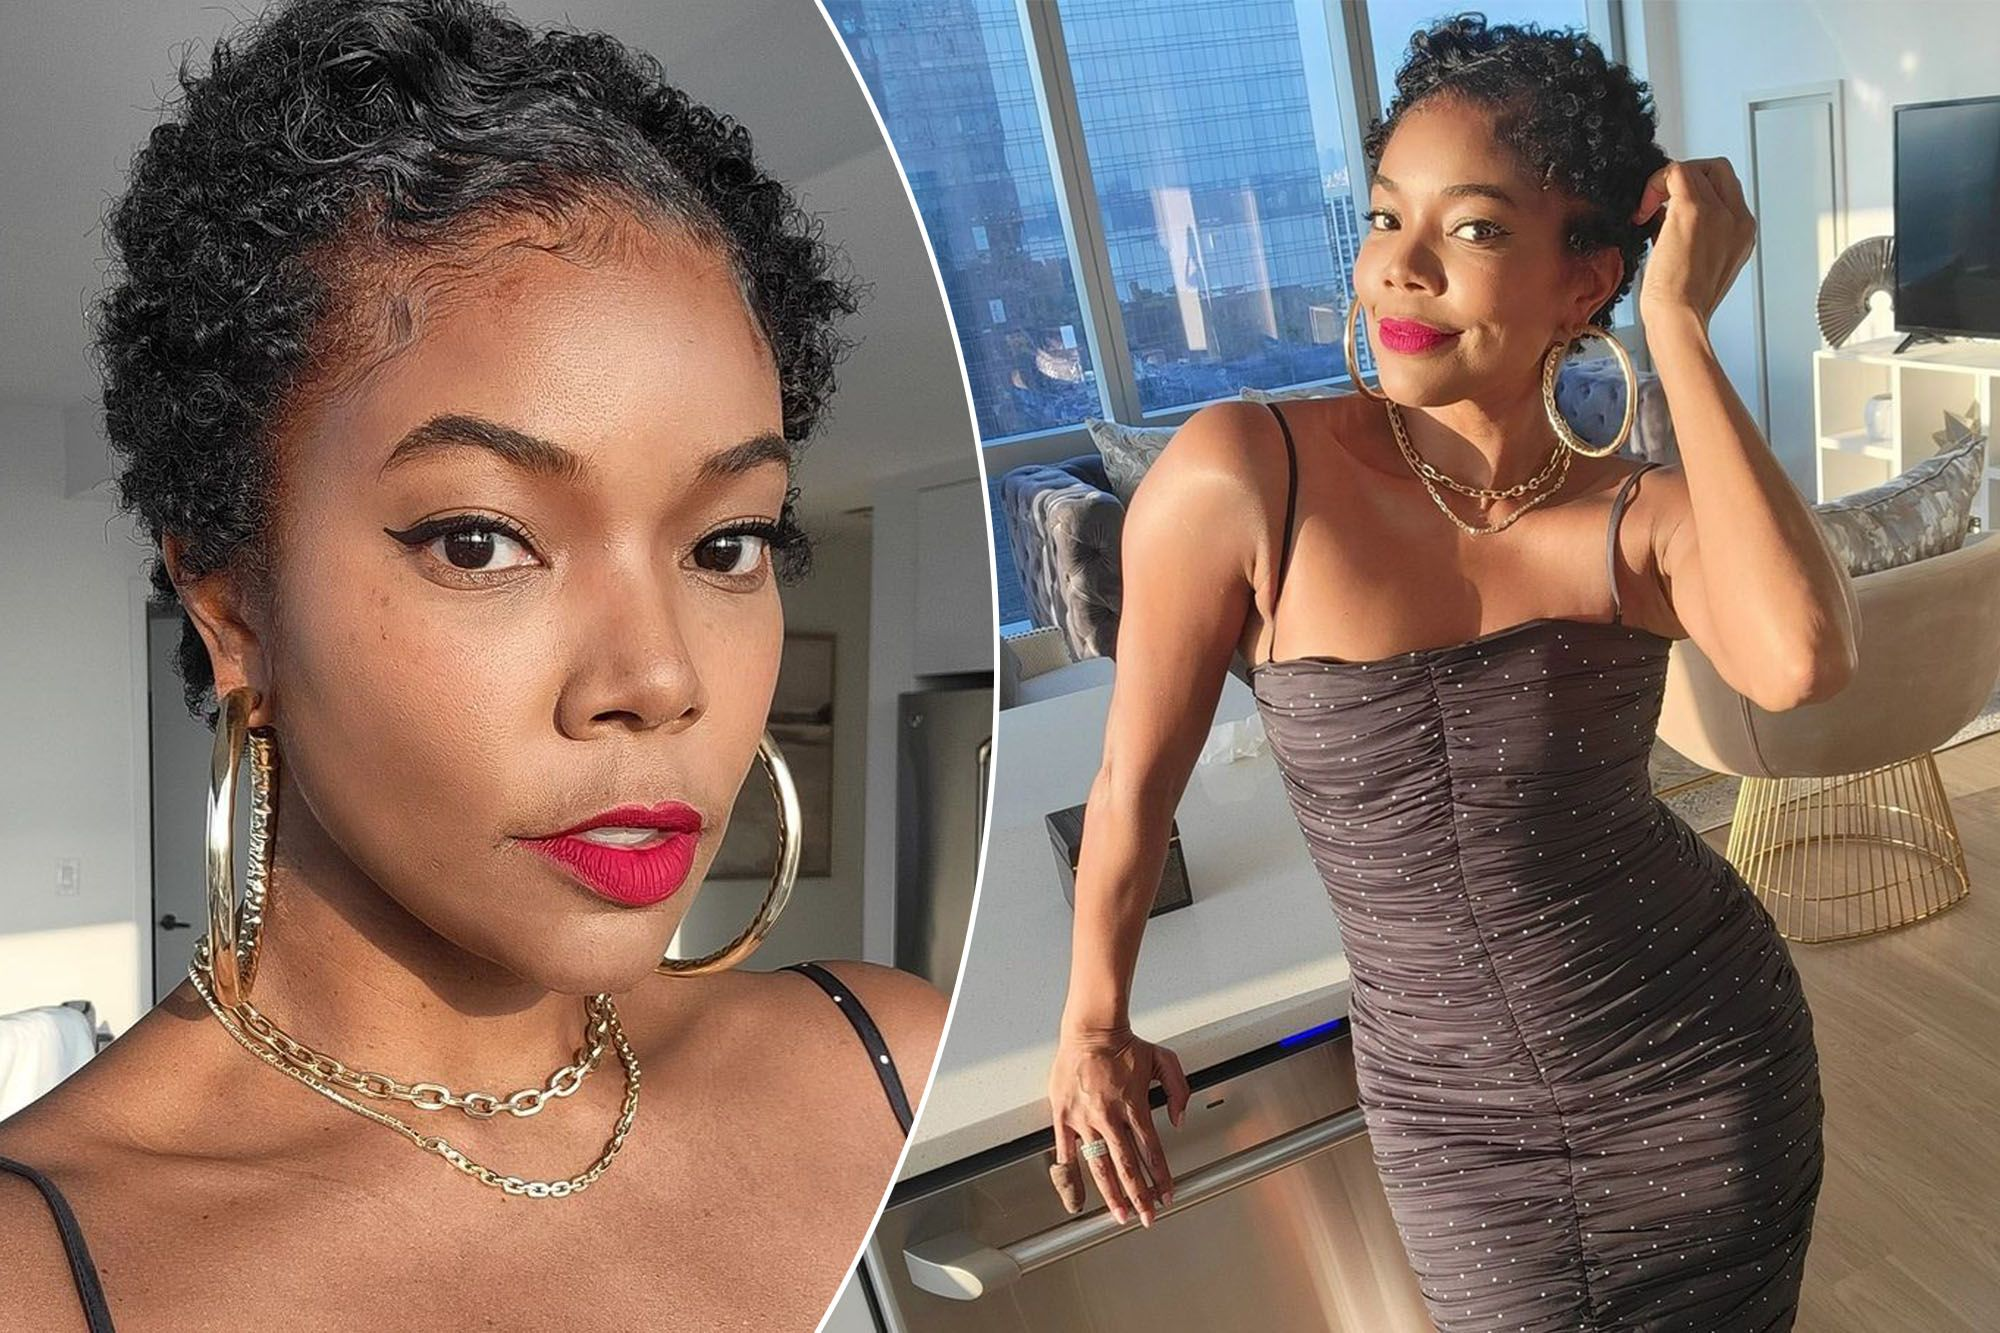 gabrielle-union-shows-fans-how-she-is-rolling-in-the-bookstores-to-see-her-book